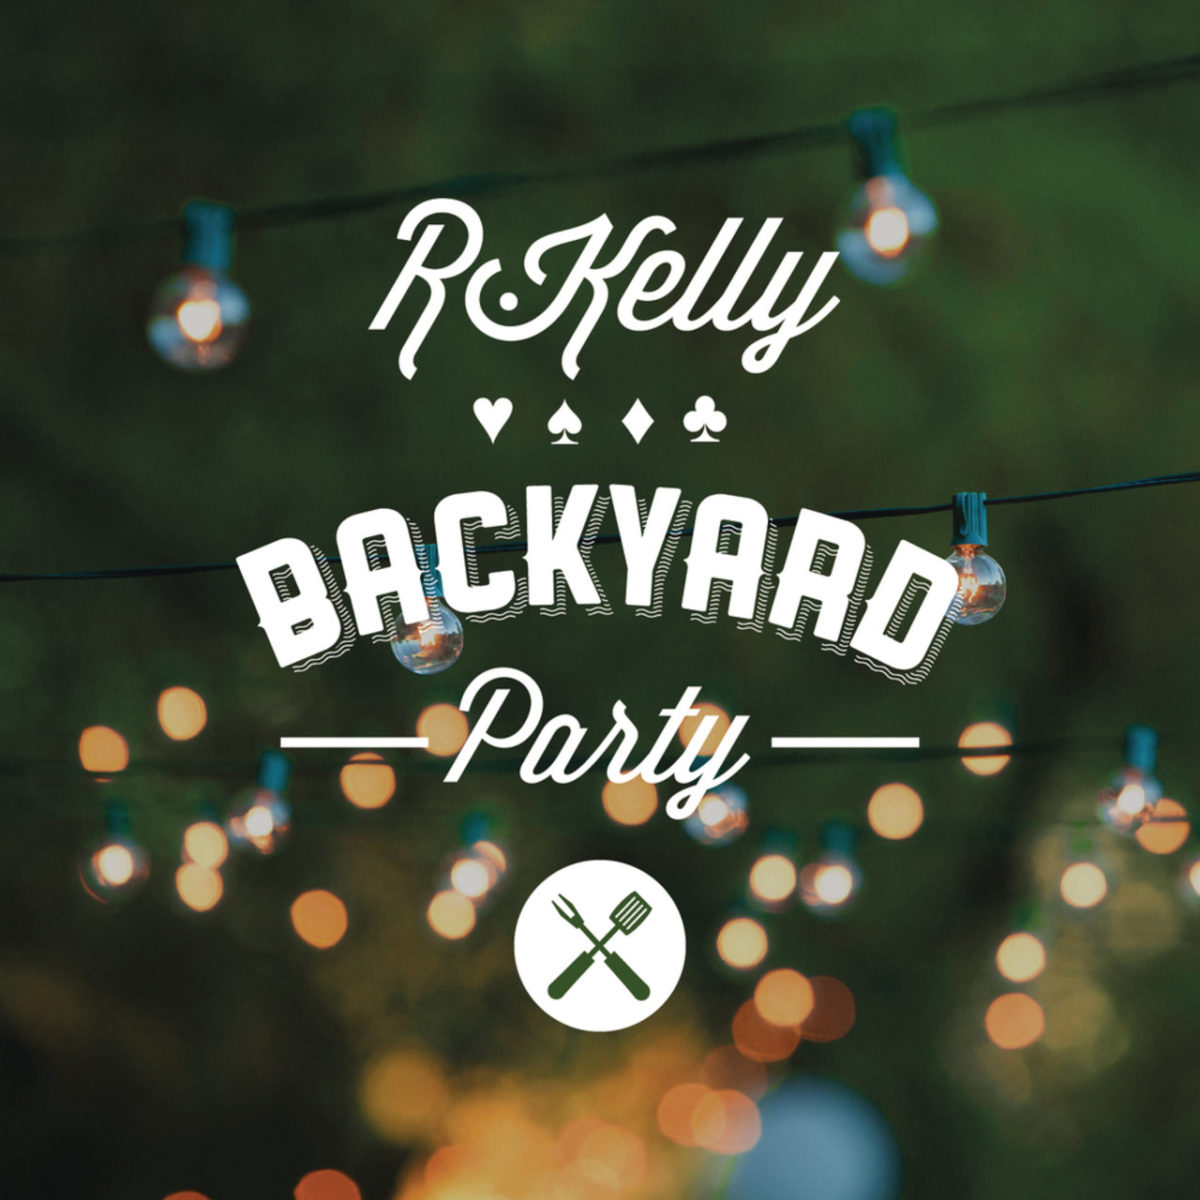 R. Kelly - Backyard Party (Cover)